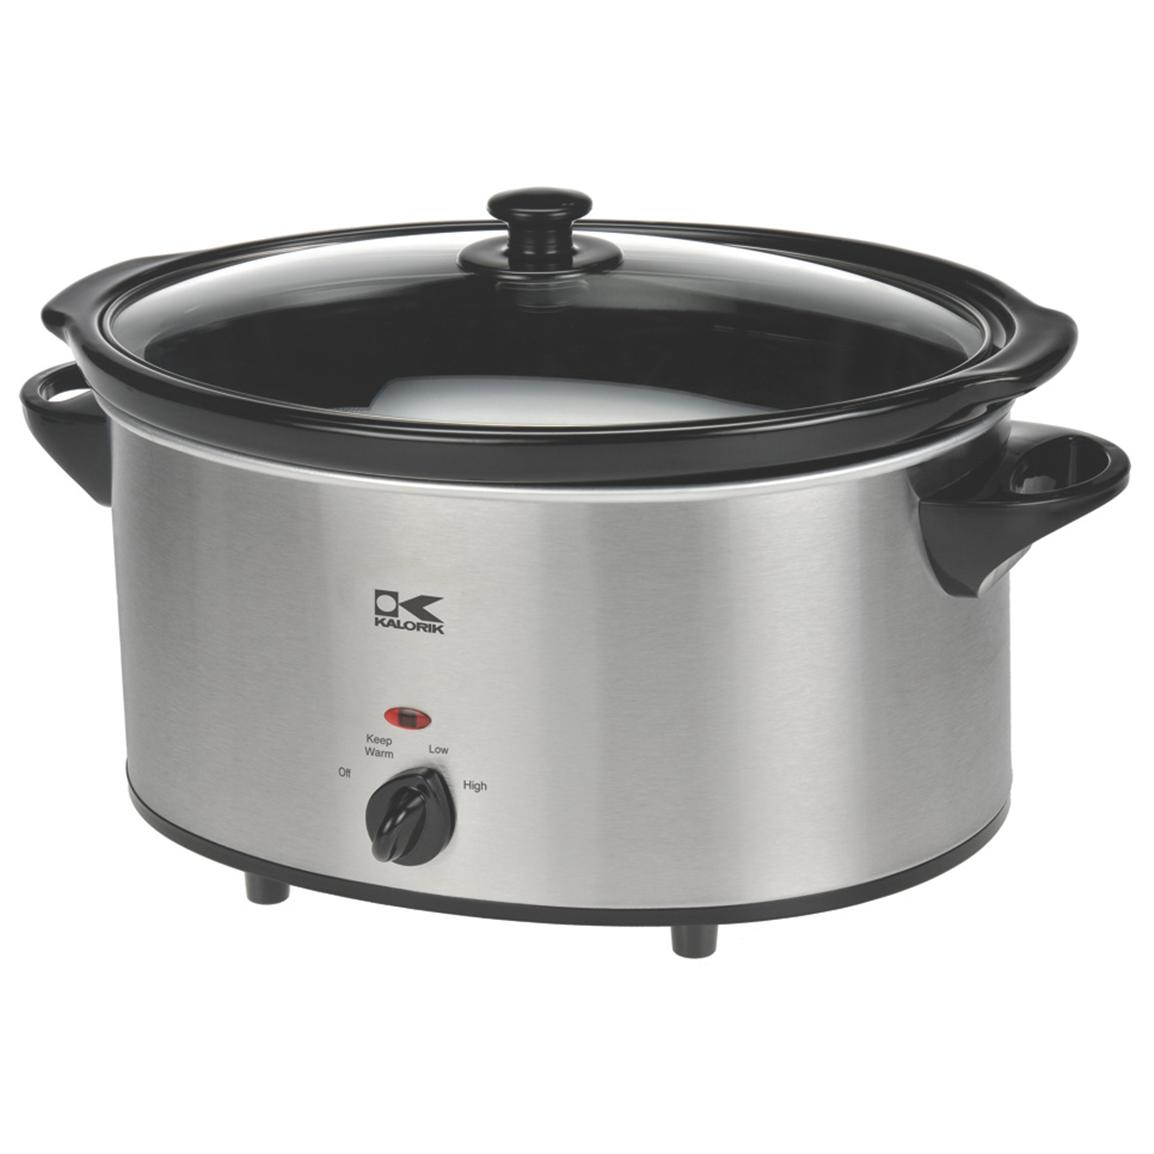 6-qt. Slow Cooker from Kalorik®, Stainless Steel